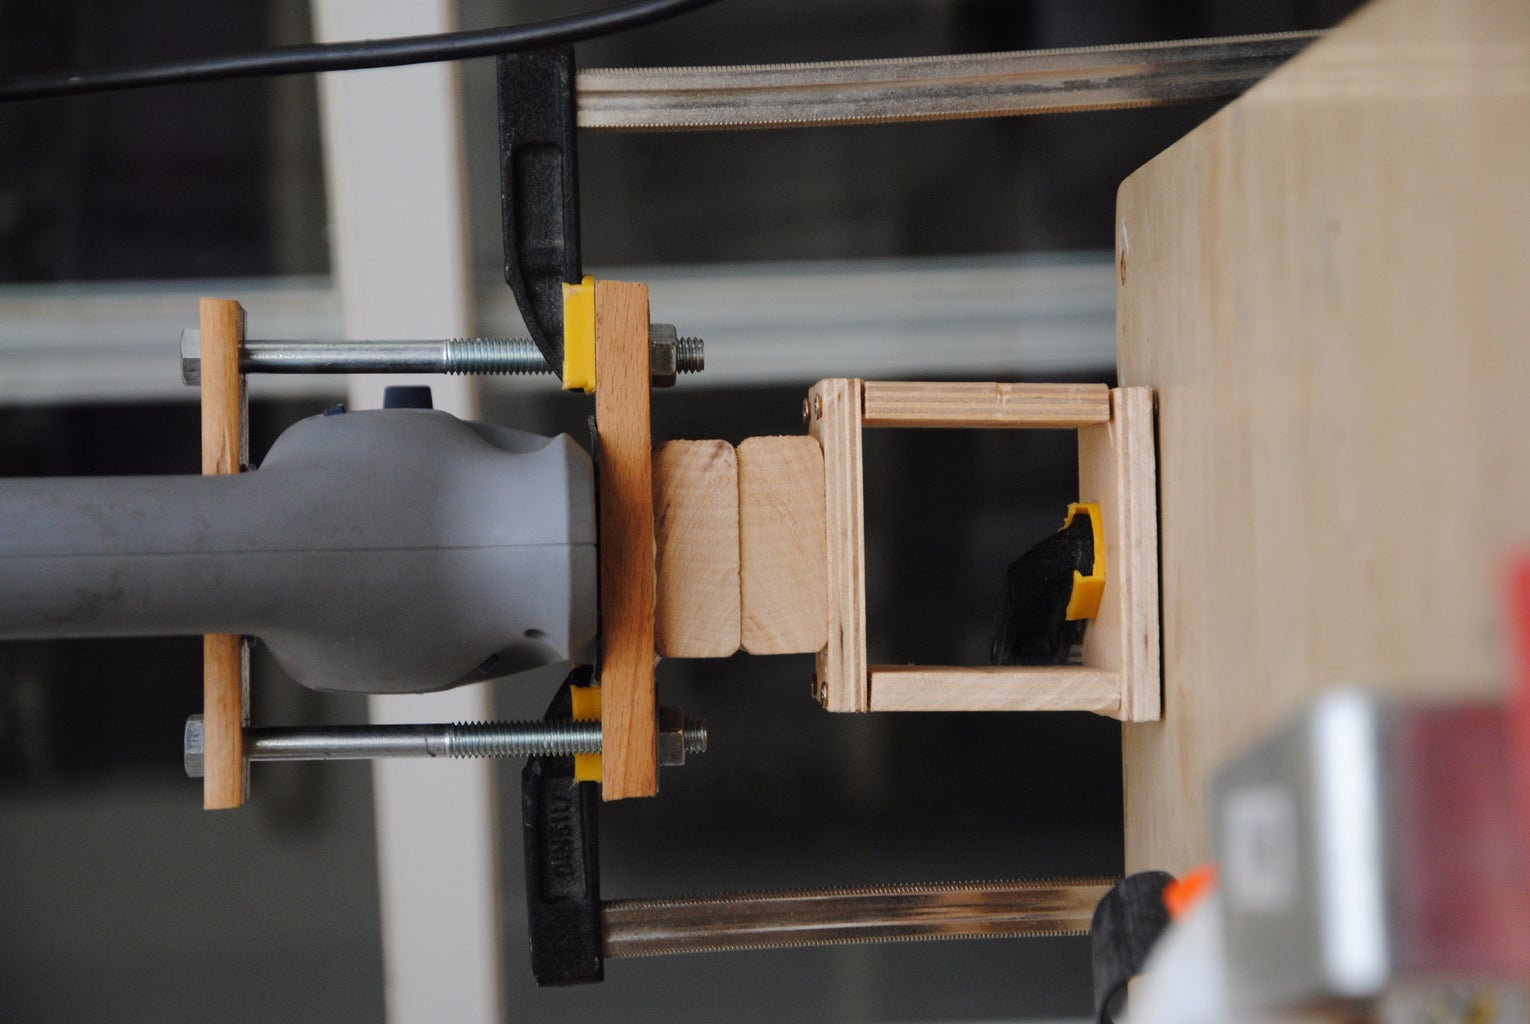 Success!: Connecting the Drill to the Cube (Spacers)